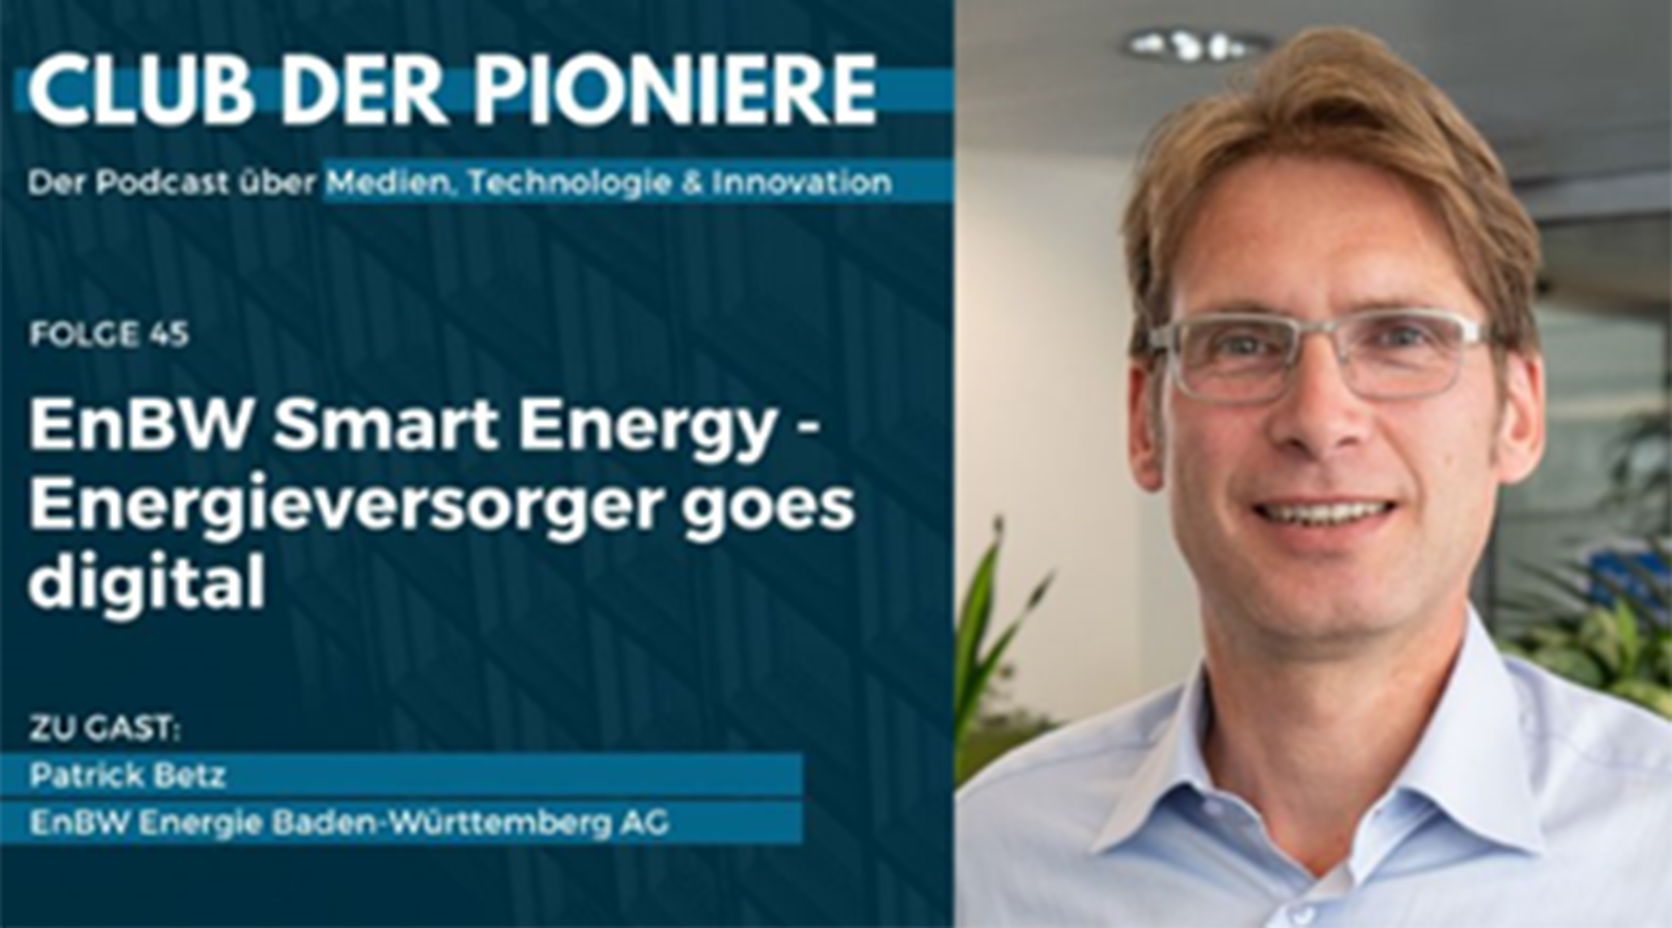 Podcast Club der Pioniere über EnBW Smart Energy